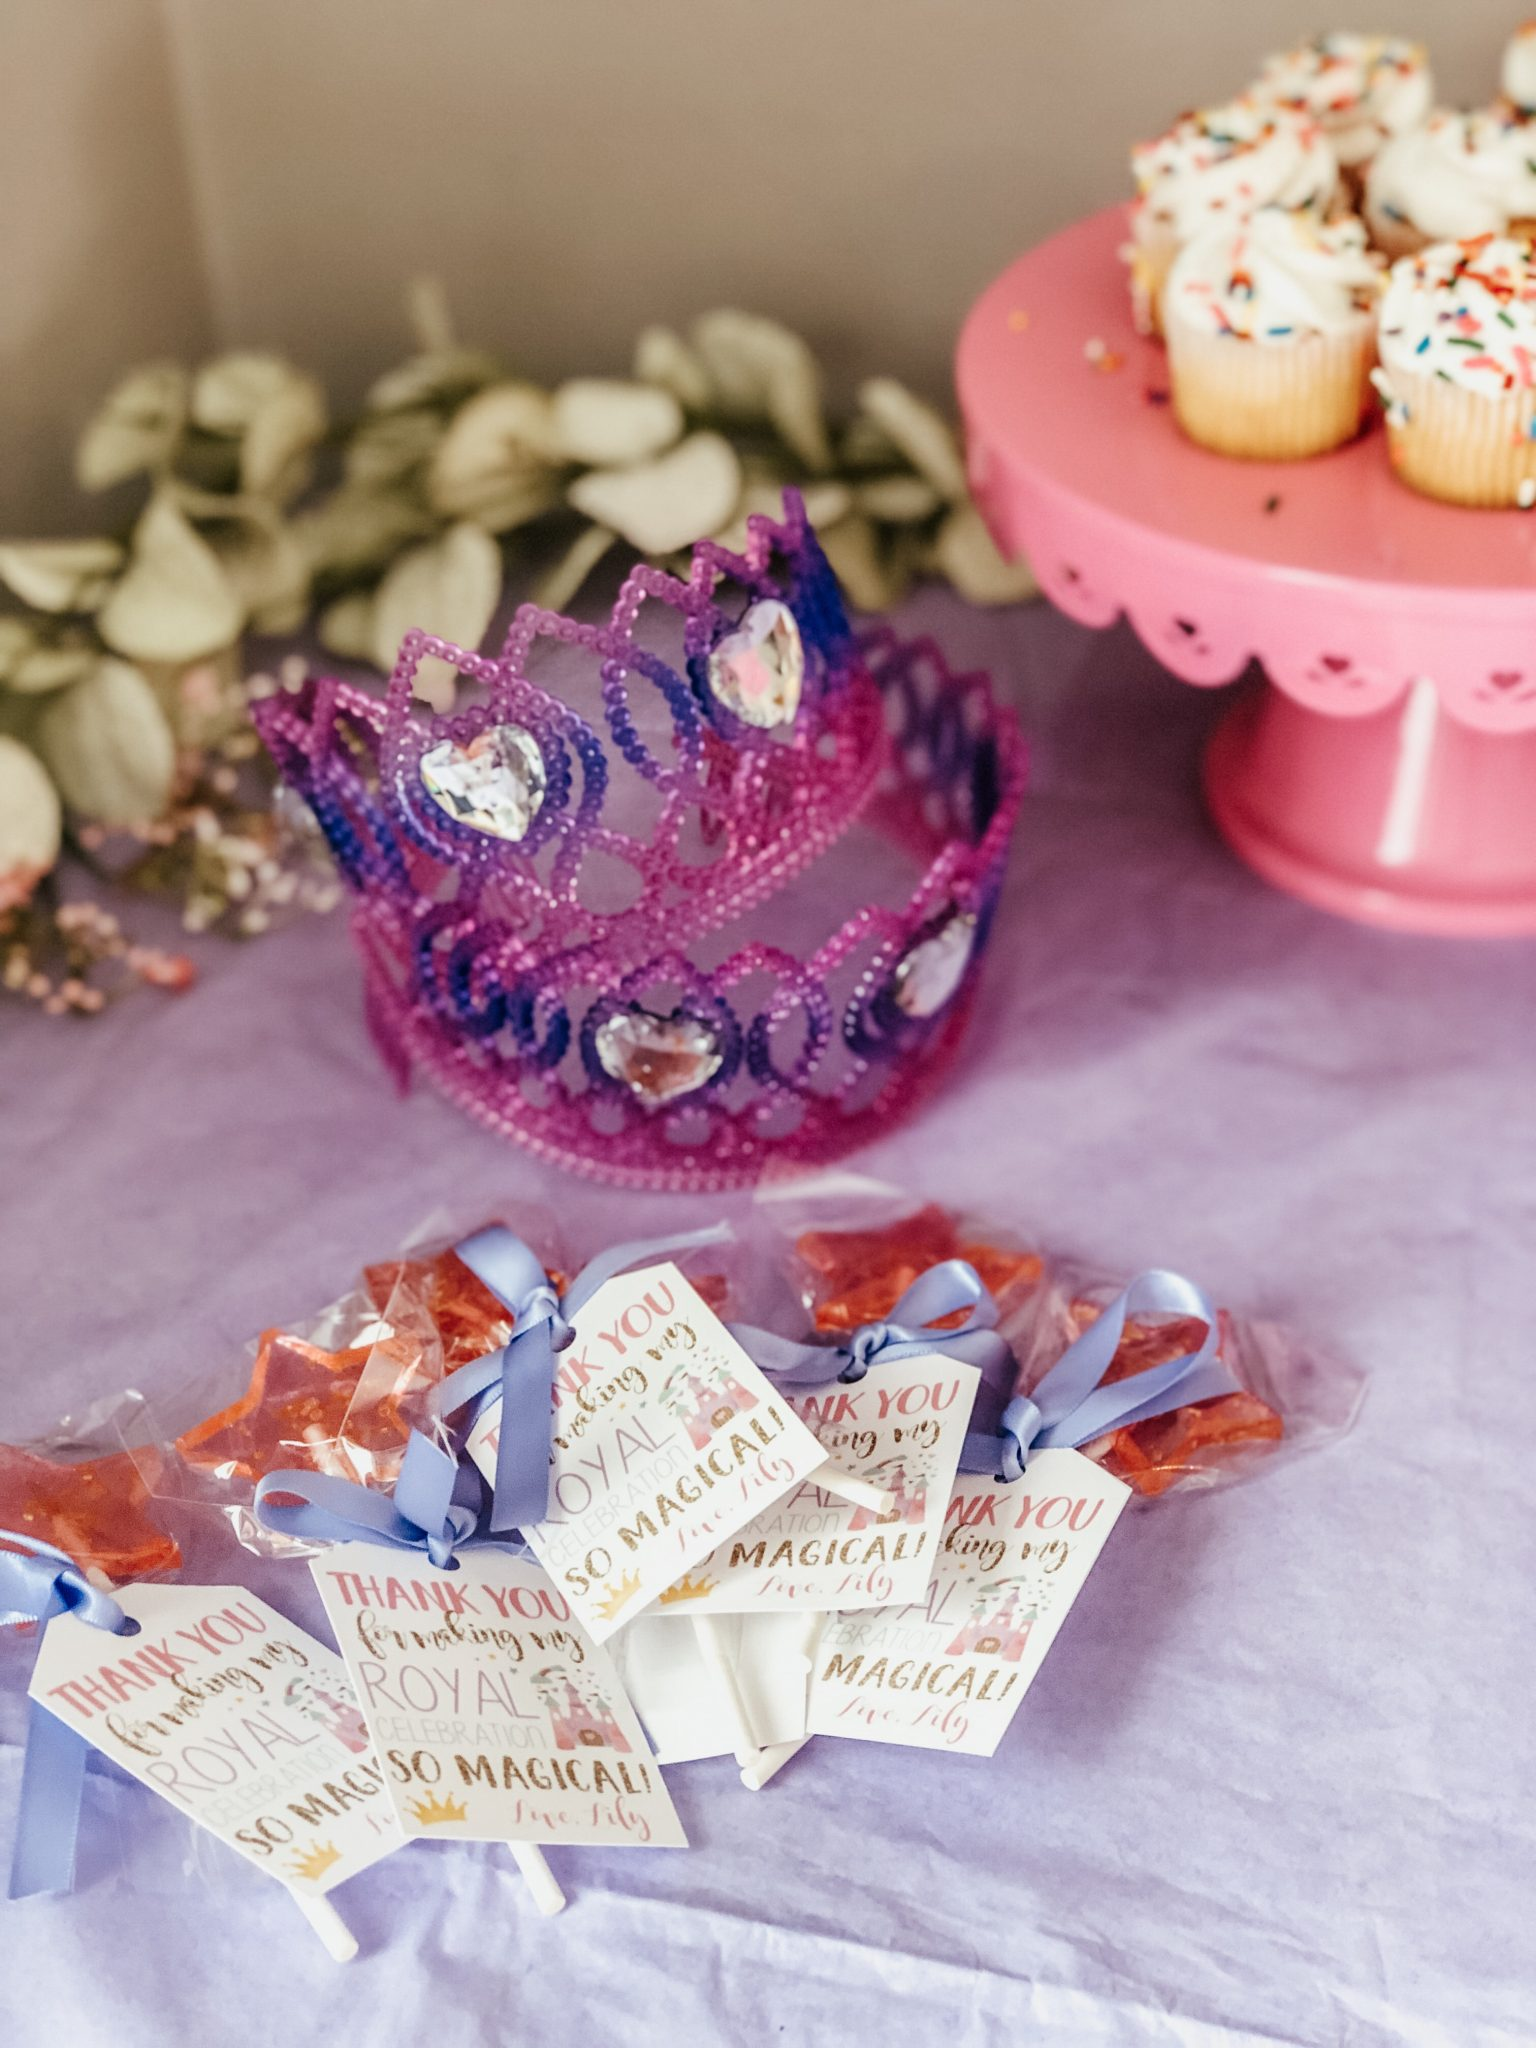 Cutest princess party made easy | Daily Splendor Life and Style Blog | Decorations and Favors | birthday party, girls party, party box, party decorations #birthdaydecorations #partysupplies #balloongarland #princessparty #sponsored #prinesscrown #partyfavors